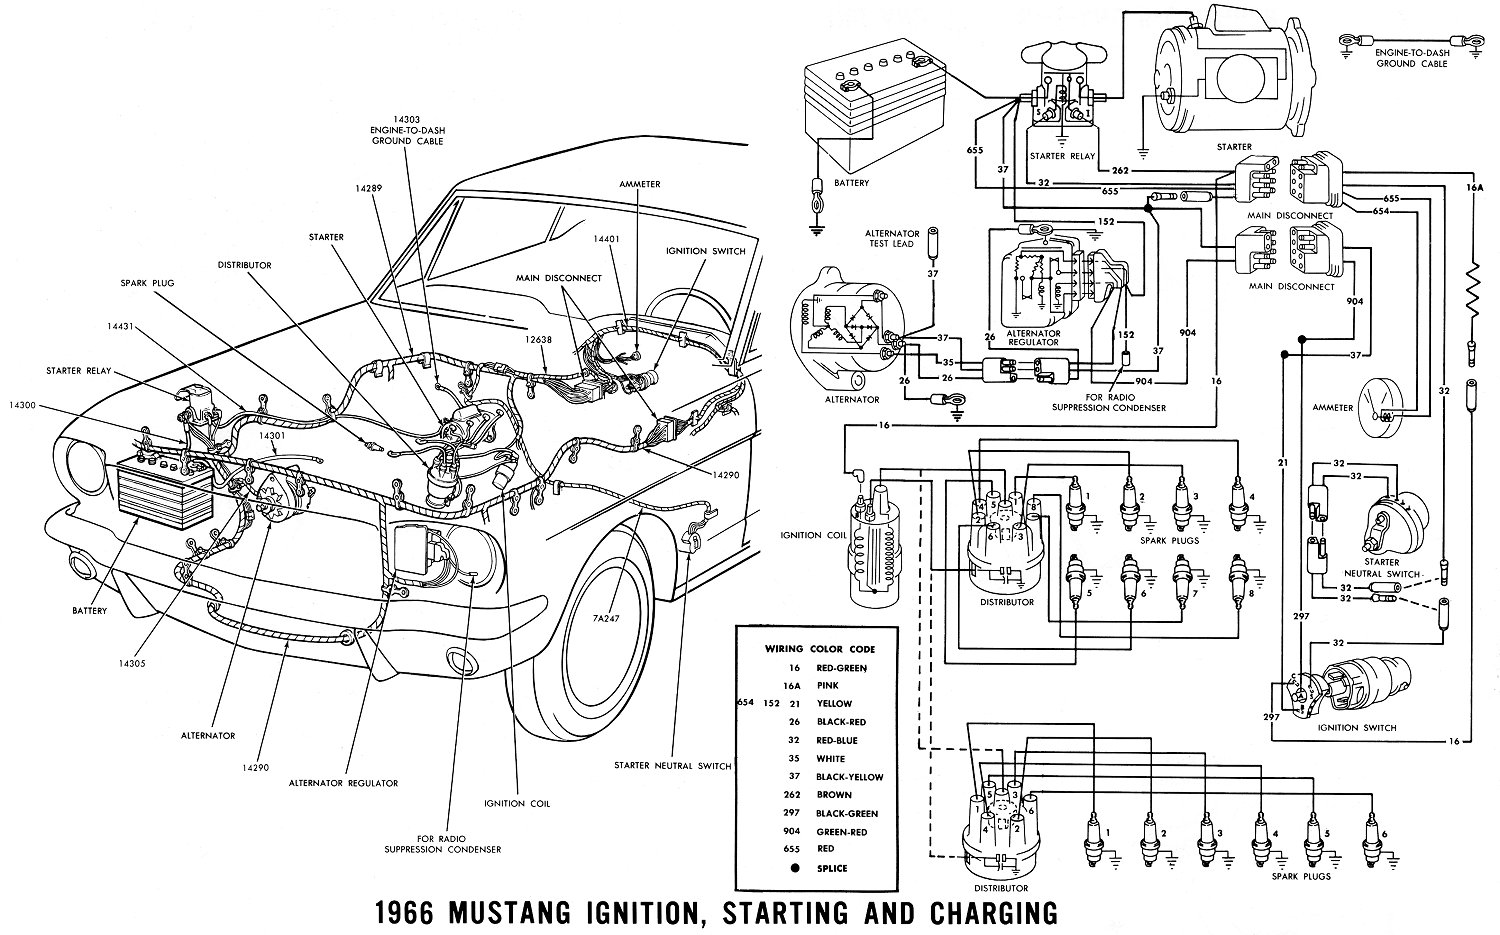 Ignition Switch Wiring Diagram Moreover 1965 Ford Mustang on torino ballast resistor wiring diagram